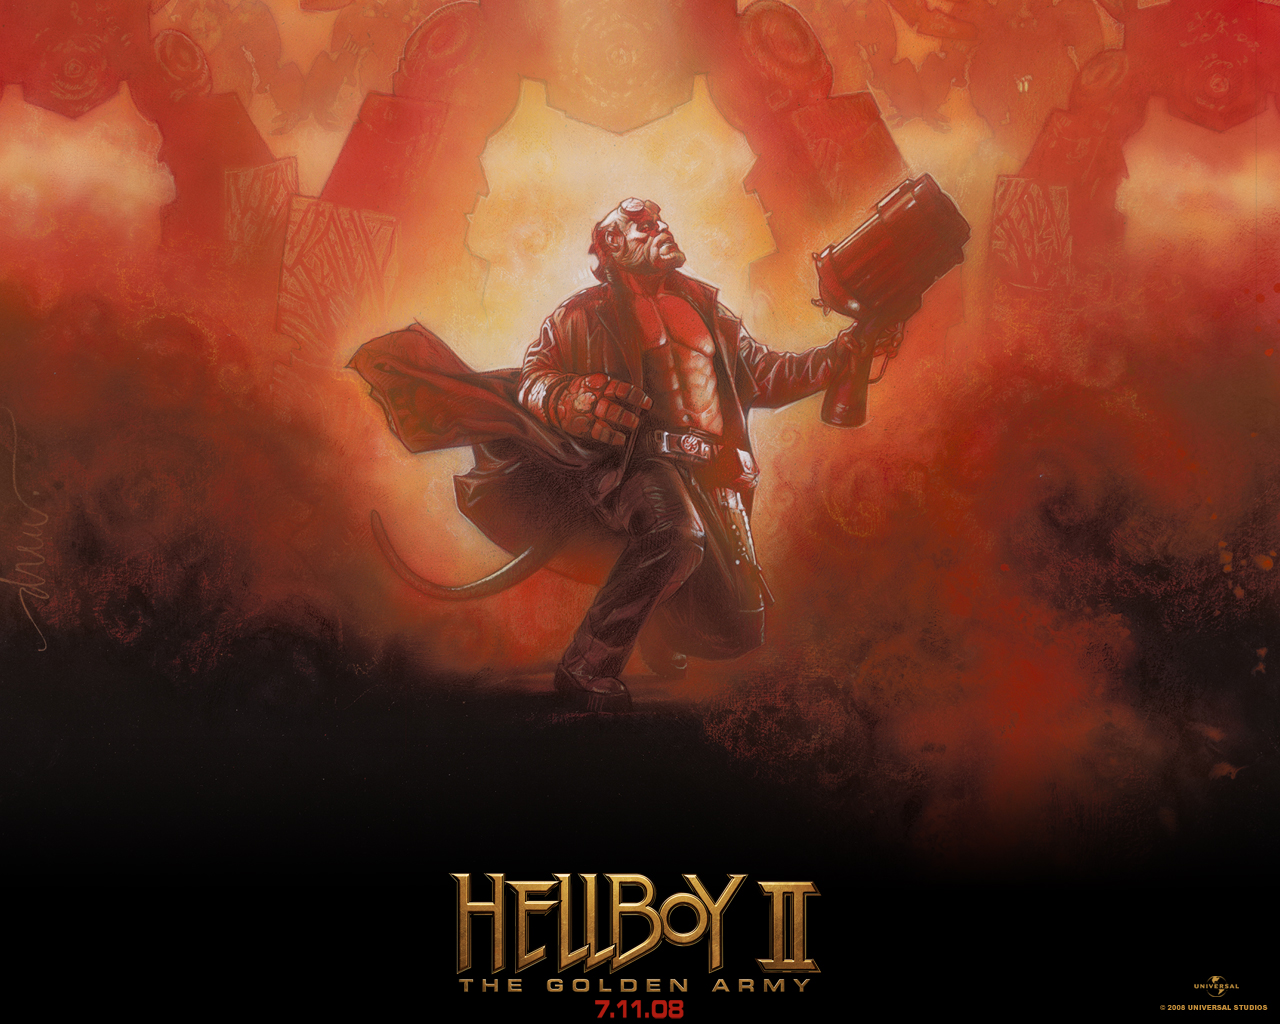 Download full size Hellboy 2 The Golden Army wallpaper / Movies / 1280x1024